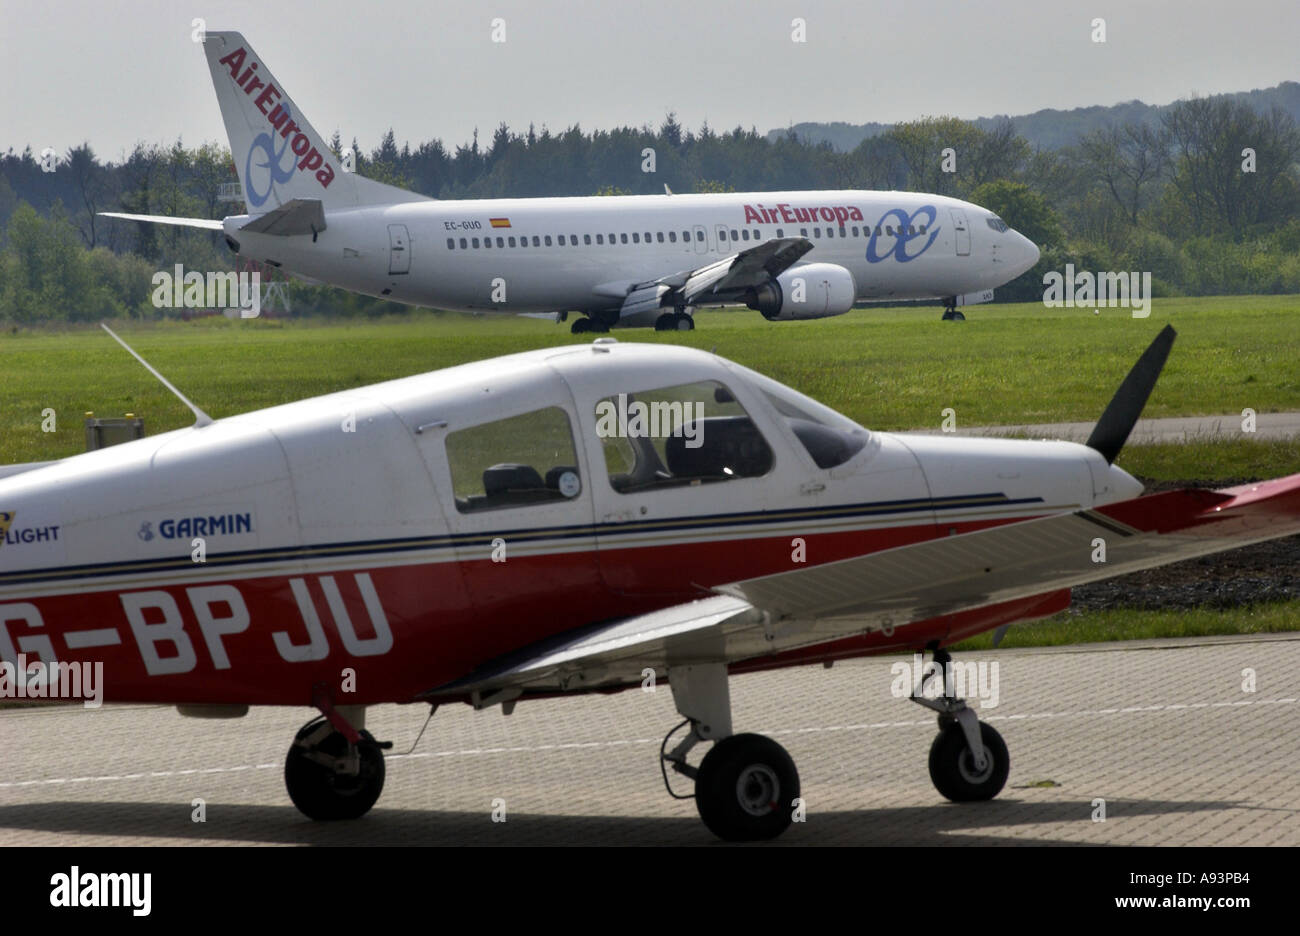 AirEuropa plane landing at Southampton Airport with light aircraft on runway in foreground - Stock Image